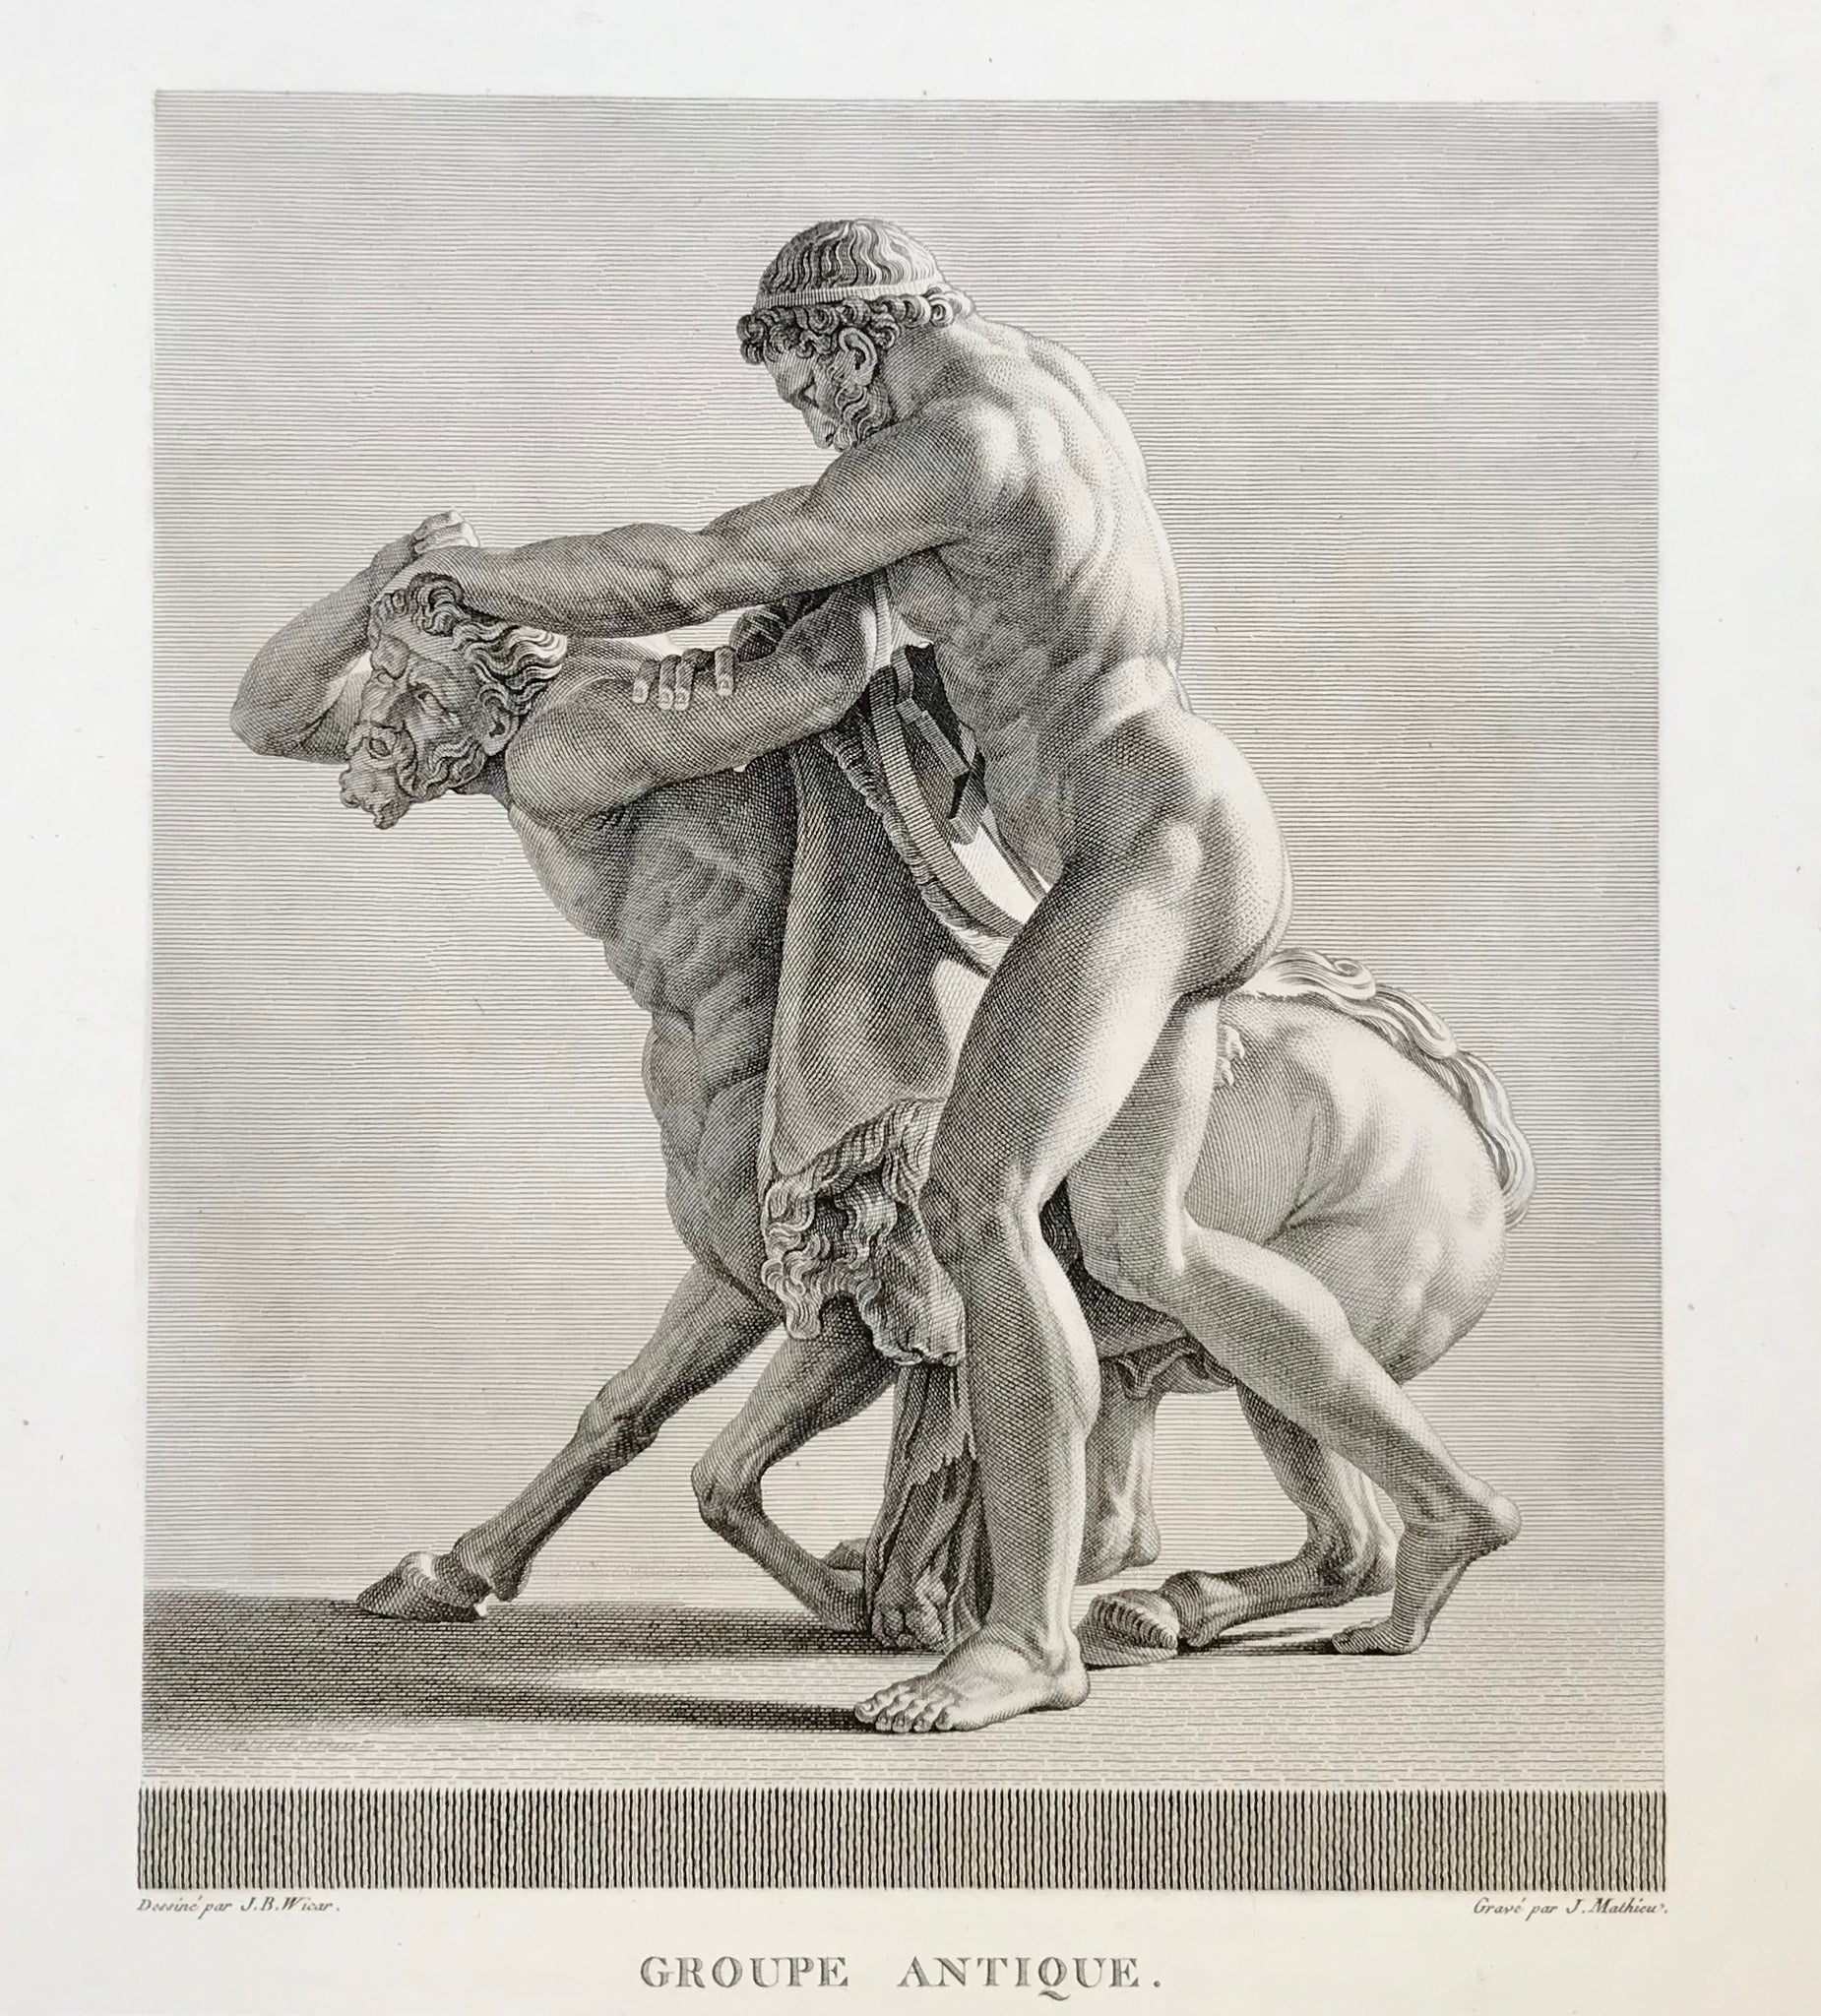 """Groupe Antique"". Hercules (Herakles) kilos Nessus, the famous Centaur""  Copper etching by Jean Mathieu  After the drawing by Jean-Baptiste Wicar (1762-1834)  Published in ""Gallery of Florence""  Paris, 1789"